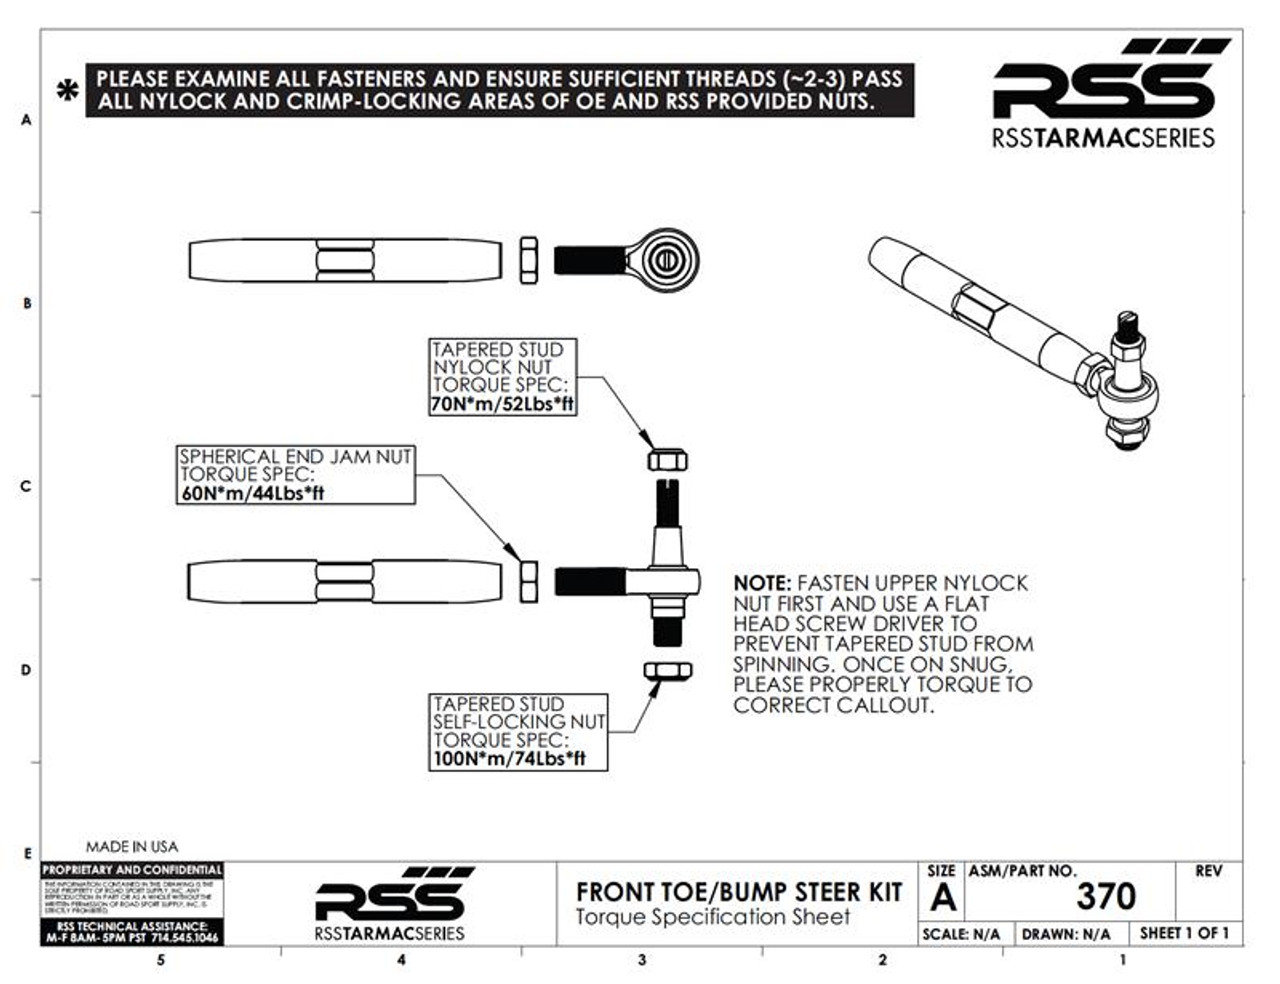 The RSS Adjustable Front Toe/Bump Steer Kit is designed for Porsche models that have been lowered. This kit will help minimize the suspension geometry change in the front of the vehicle. Allows for bump steer adjustment. Improves handling, feedback and control. AVAILABLE FOR ALL PORSCHE® 986, 996, 987, 997, INCLUDING TURBO & GT3/GT3RS.